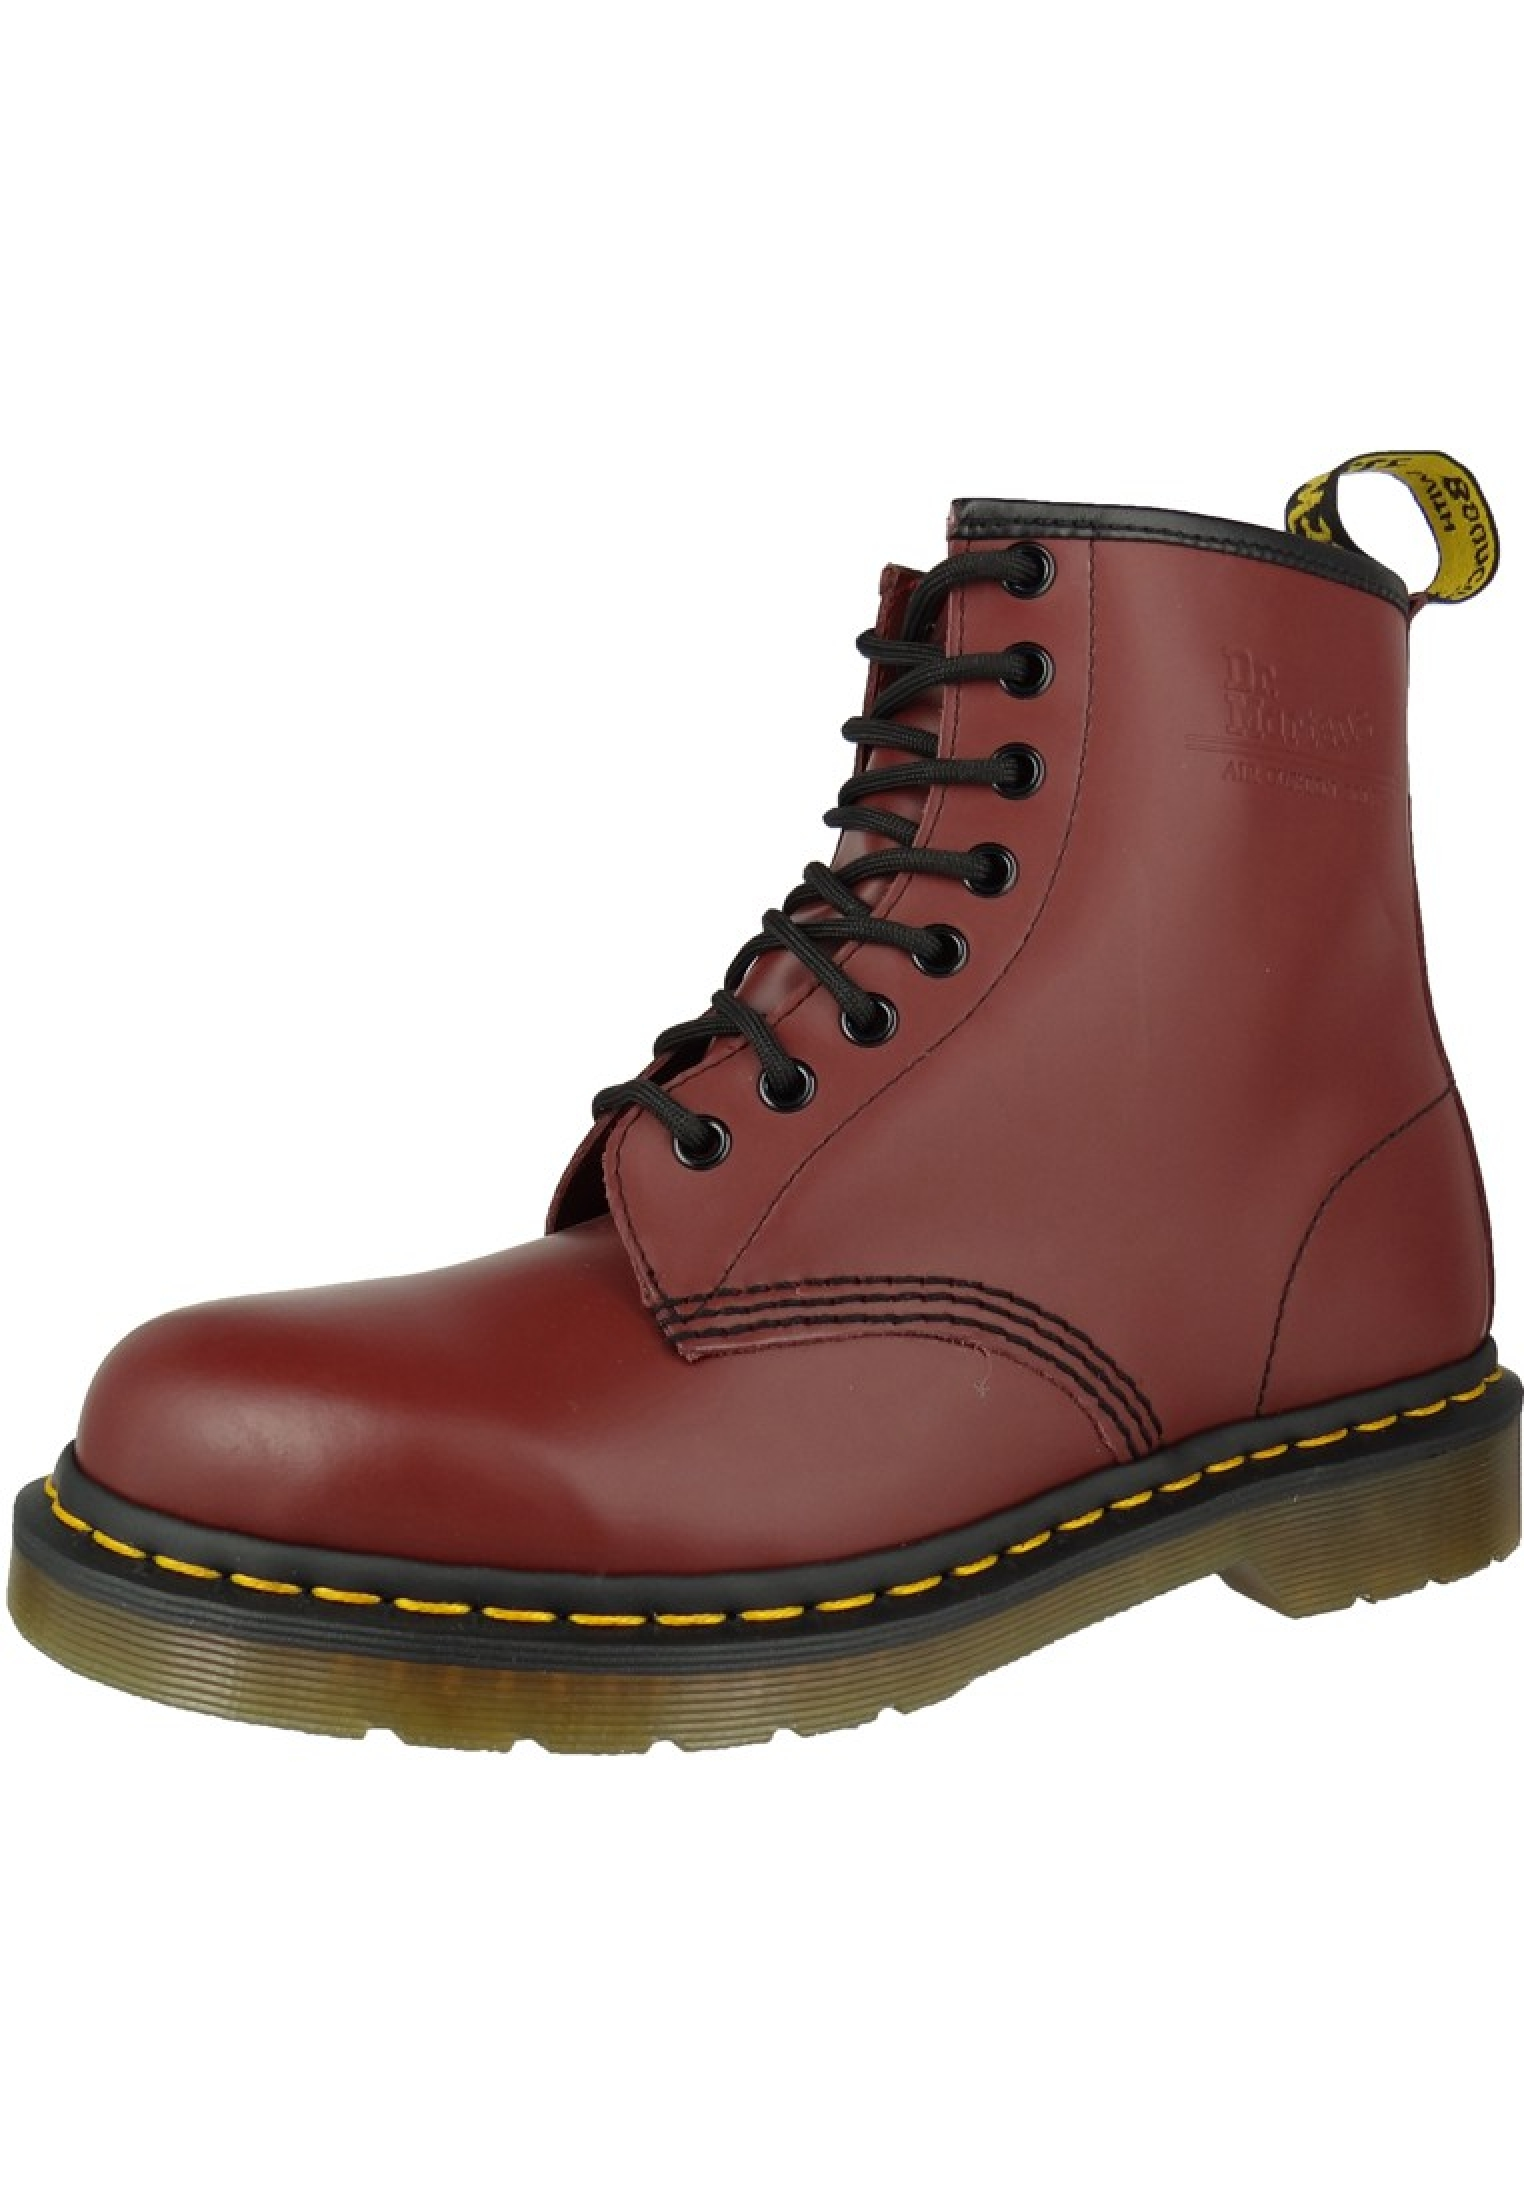 doc dr martens 1460 cherry red rot 8 loch 11822600. Black Bedroom Furniture Sets. Home Design Ideas